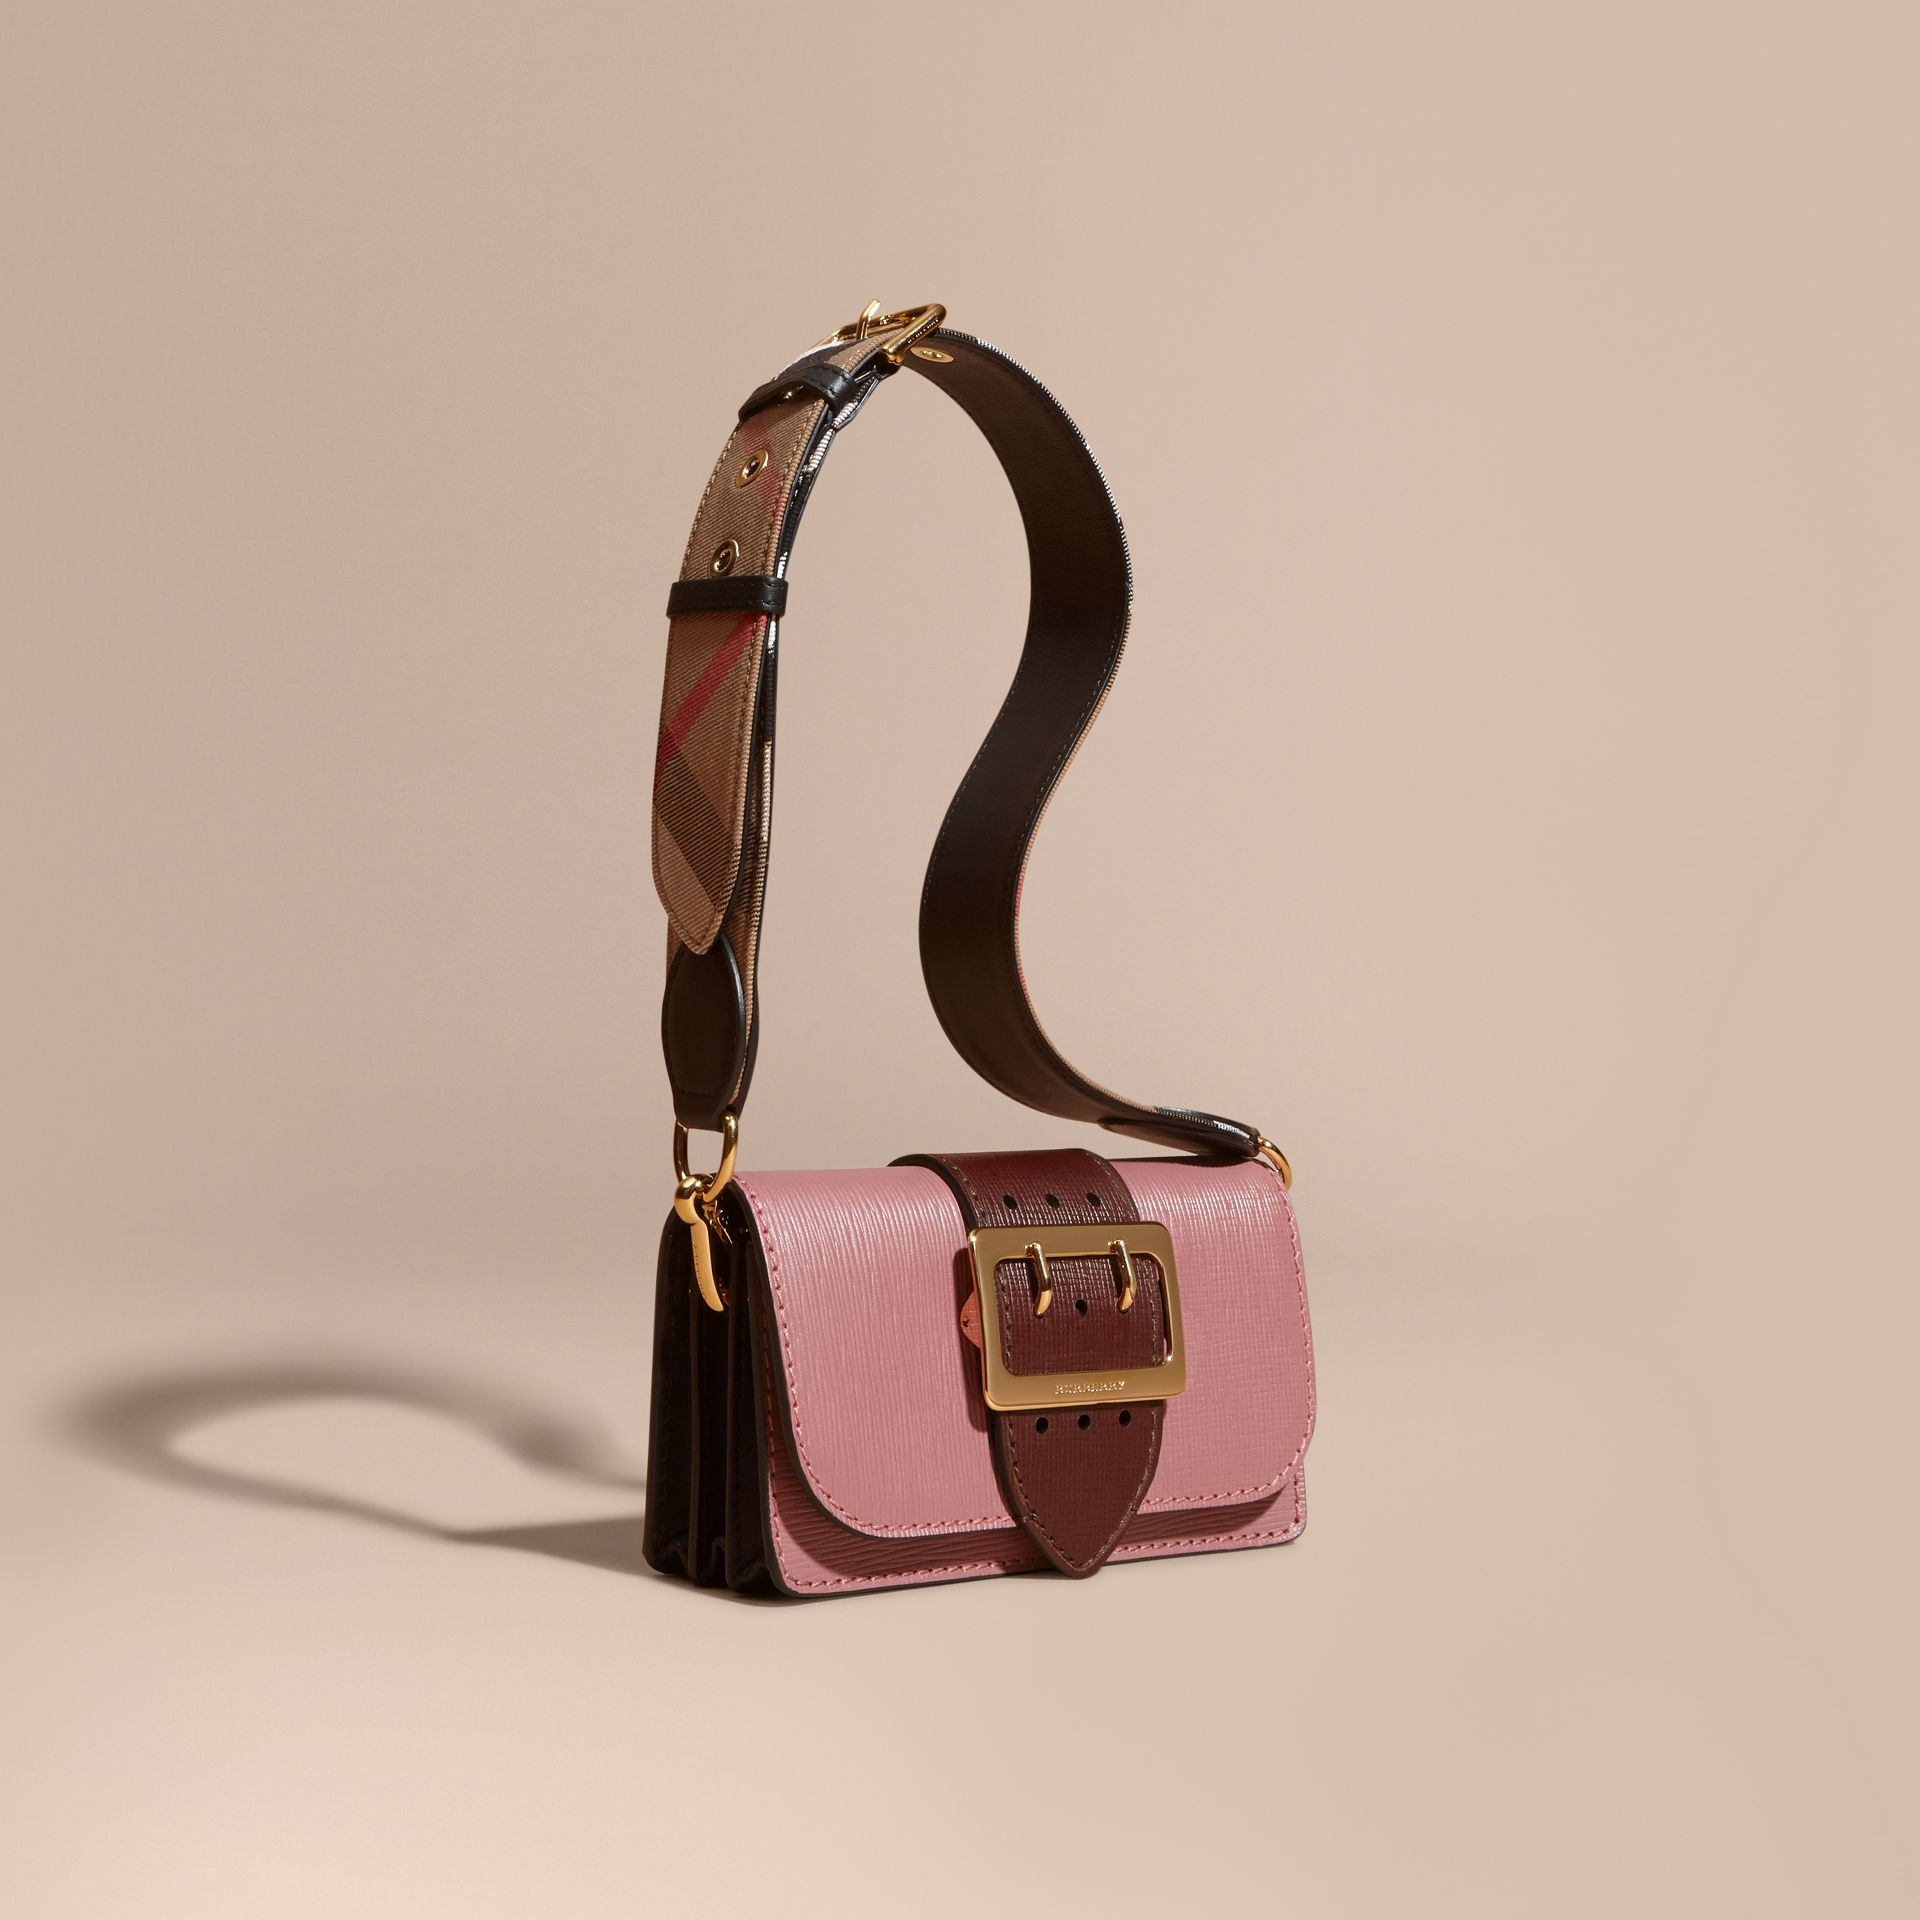 Dusky pink/ burgundy The Small Buckle Bag in Textured Leather Dusky Pink/ Burgundy - gallery image 1